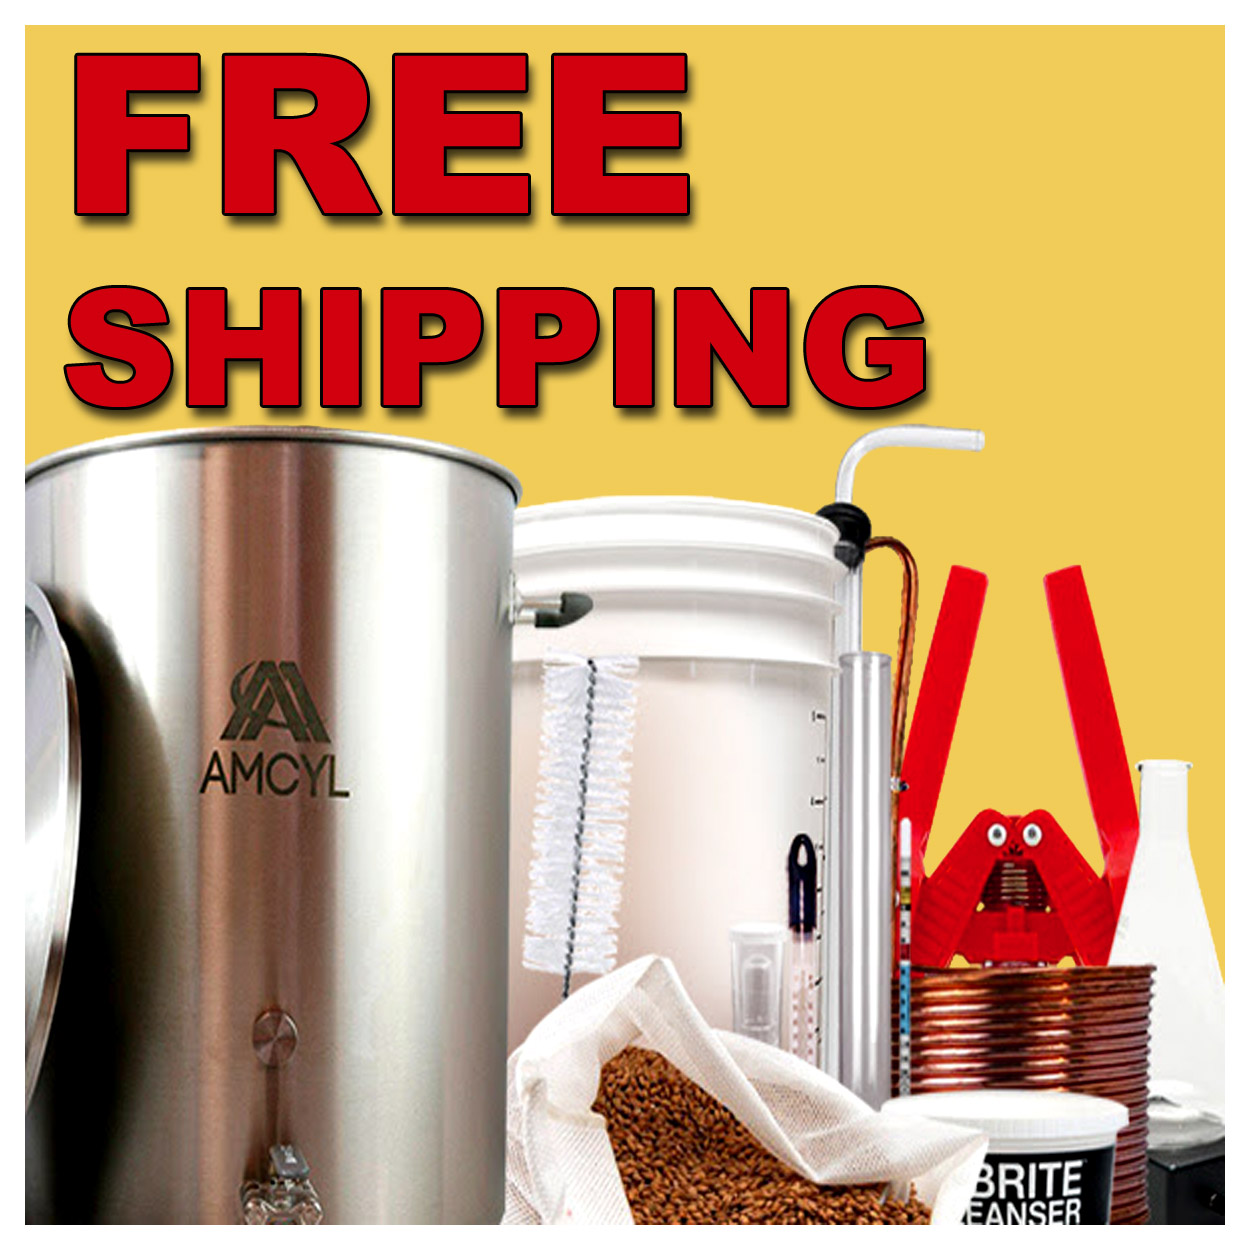 Free Shipping On All Orders Over $50 at Homebrew Supply Coupon Code